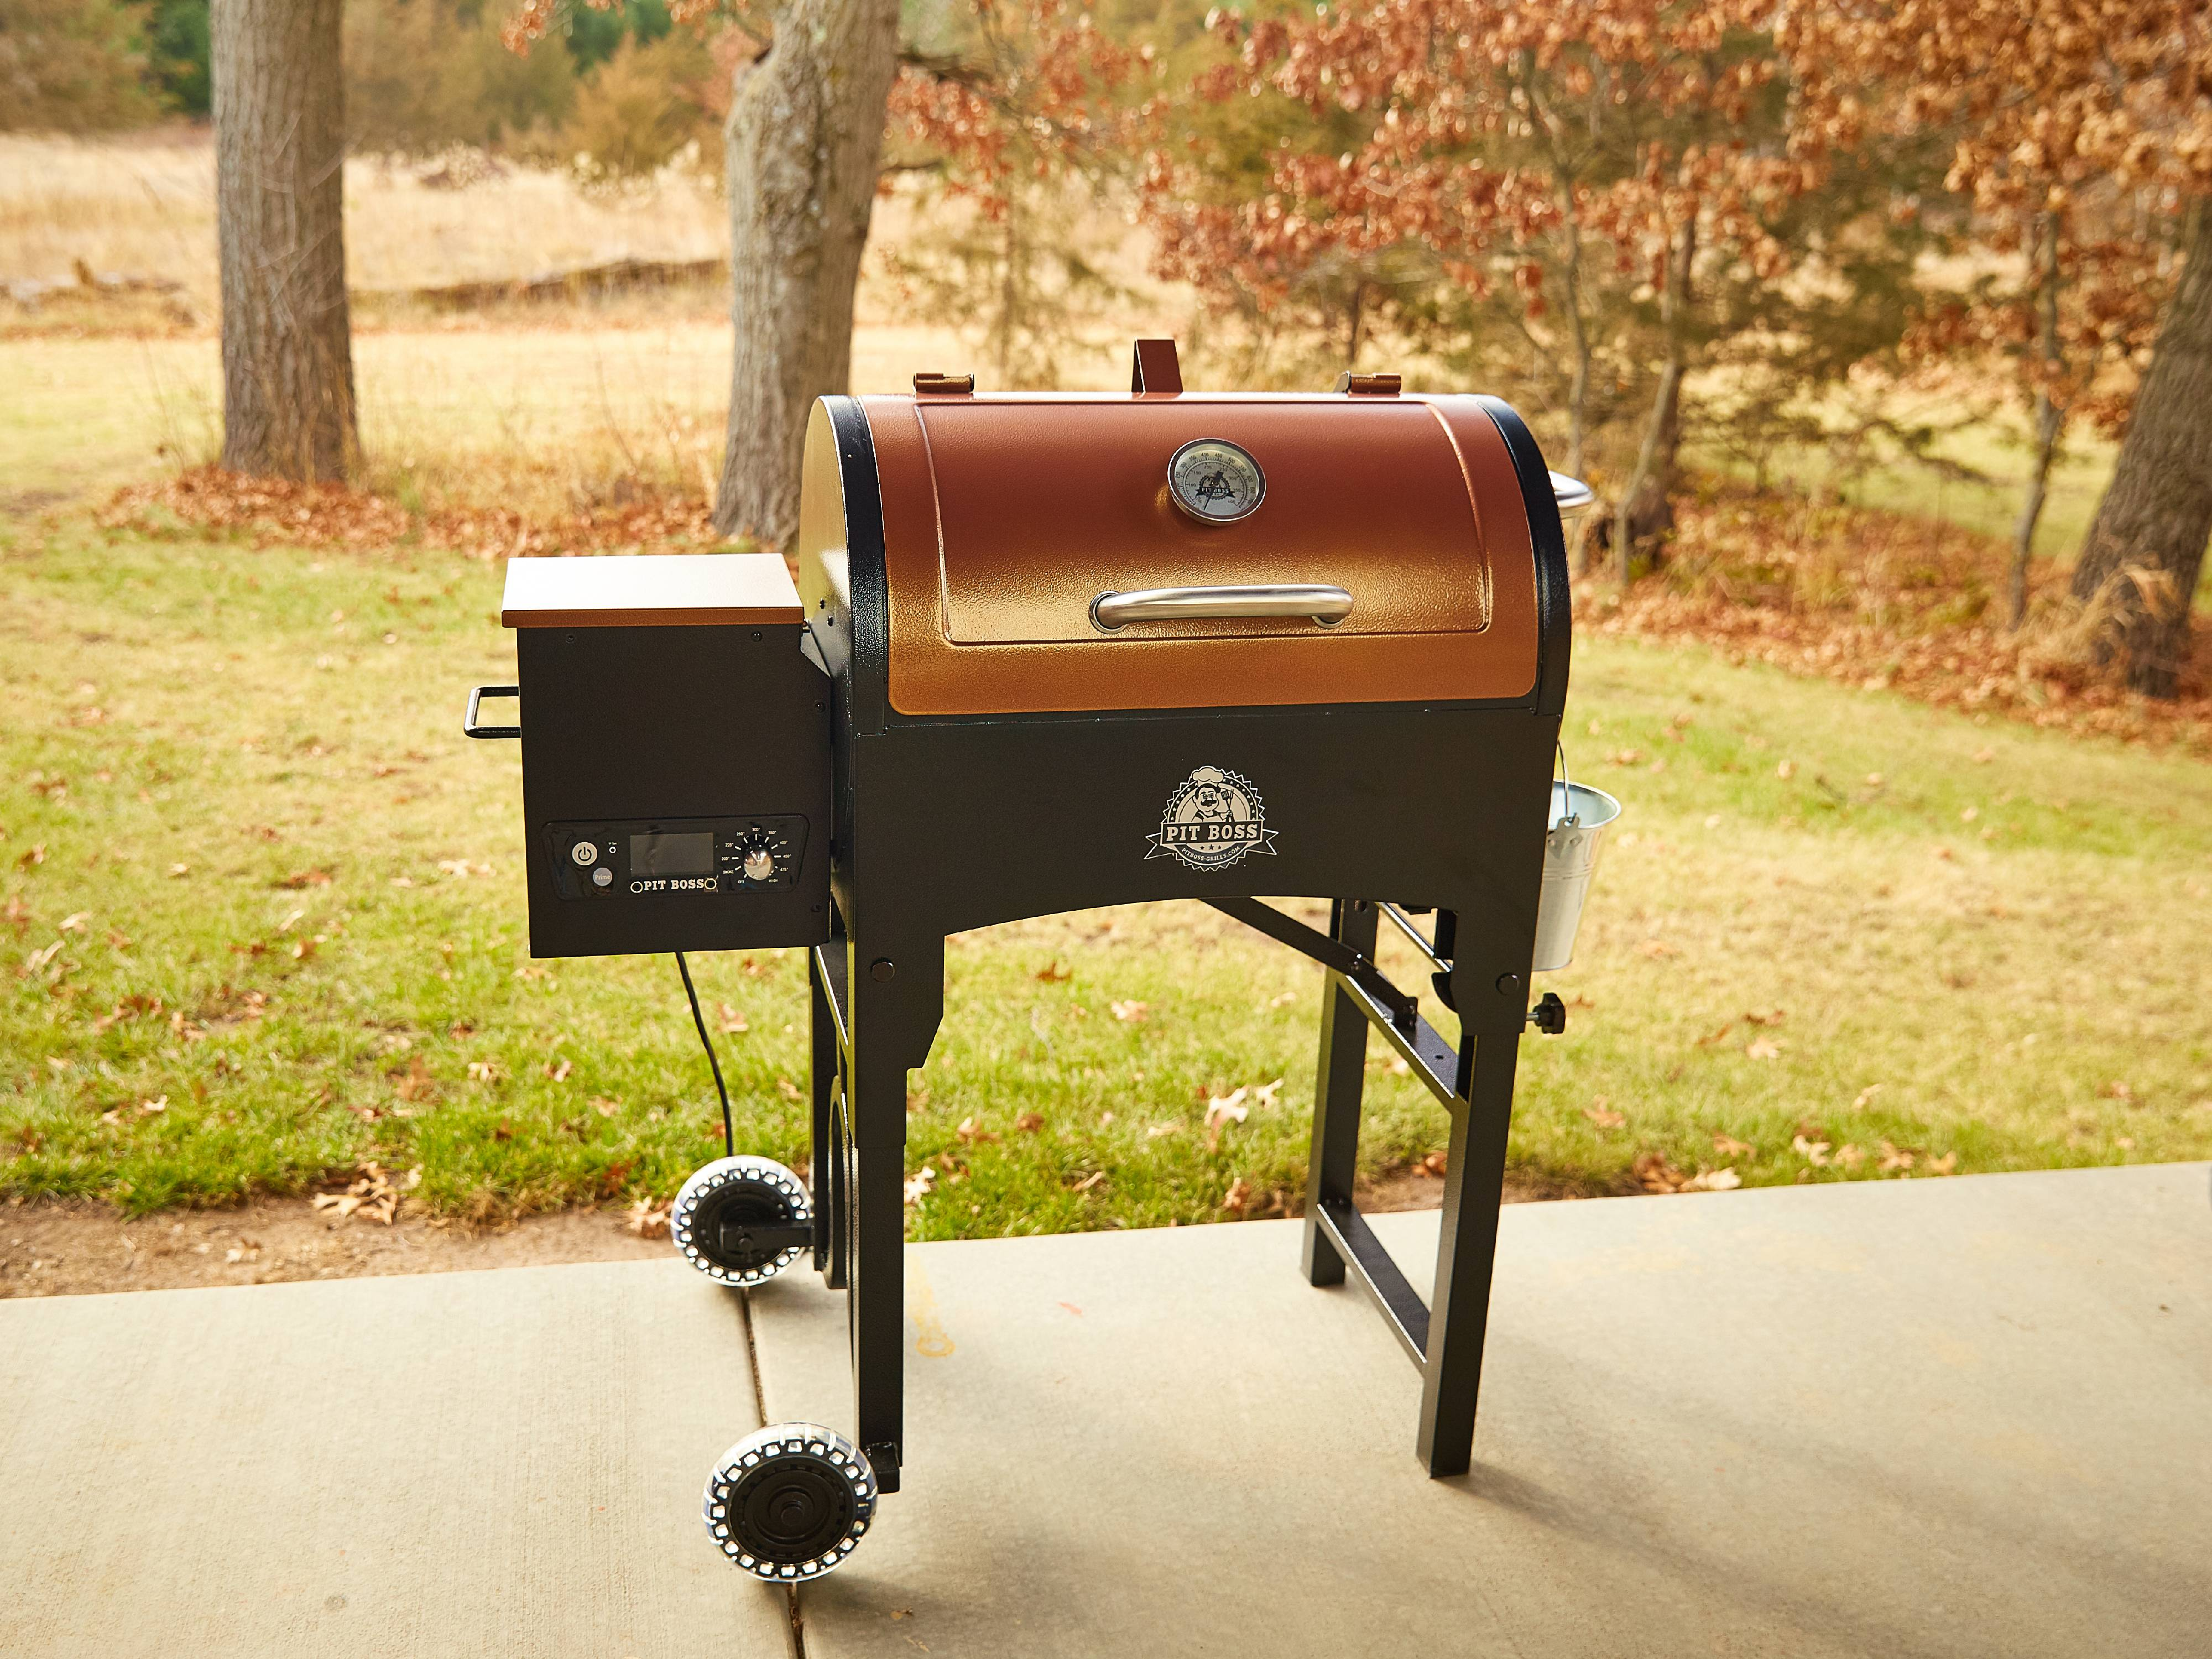 Pit Boss 340 sq  in  Portable Tailgate/Camp Pellet Grill w